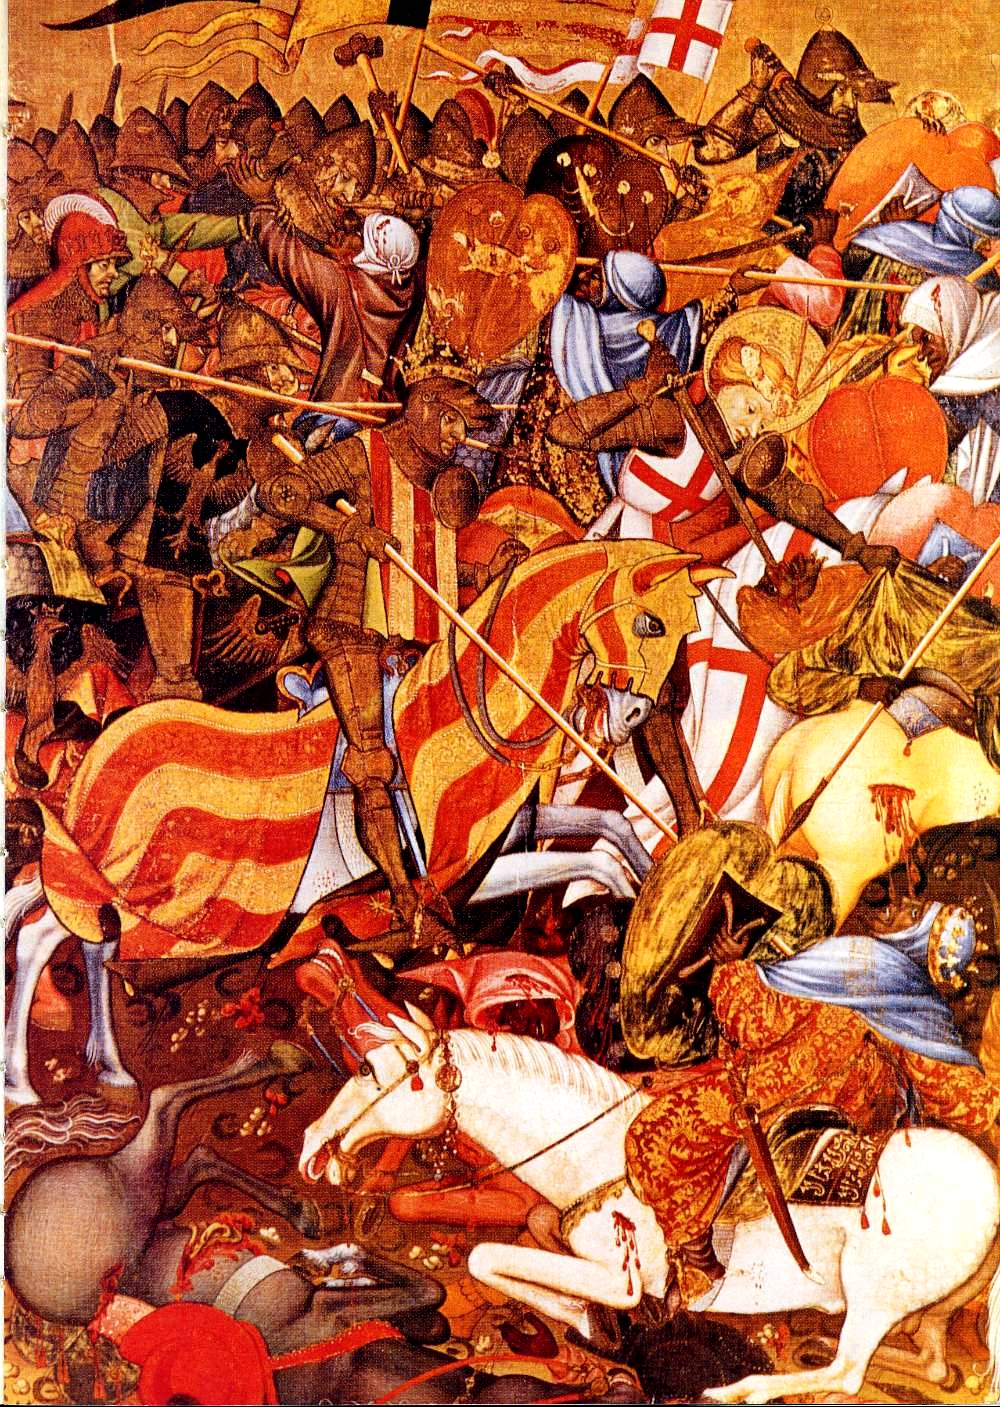 https://upload.wikimedia.org/wikipedia/commons/f/f6/Batalla_del_Puig_por_Marzal_de_Sas_(1410-20).jpg